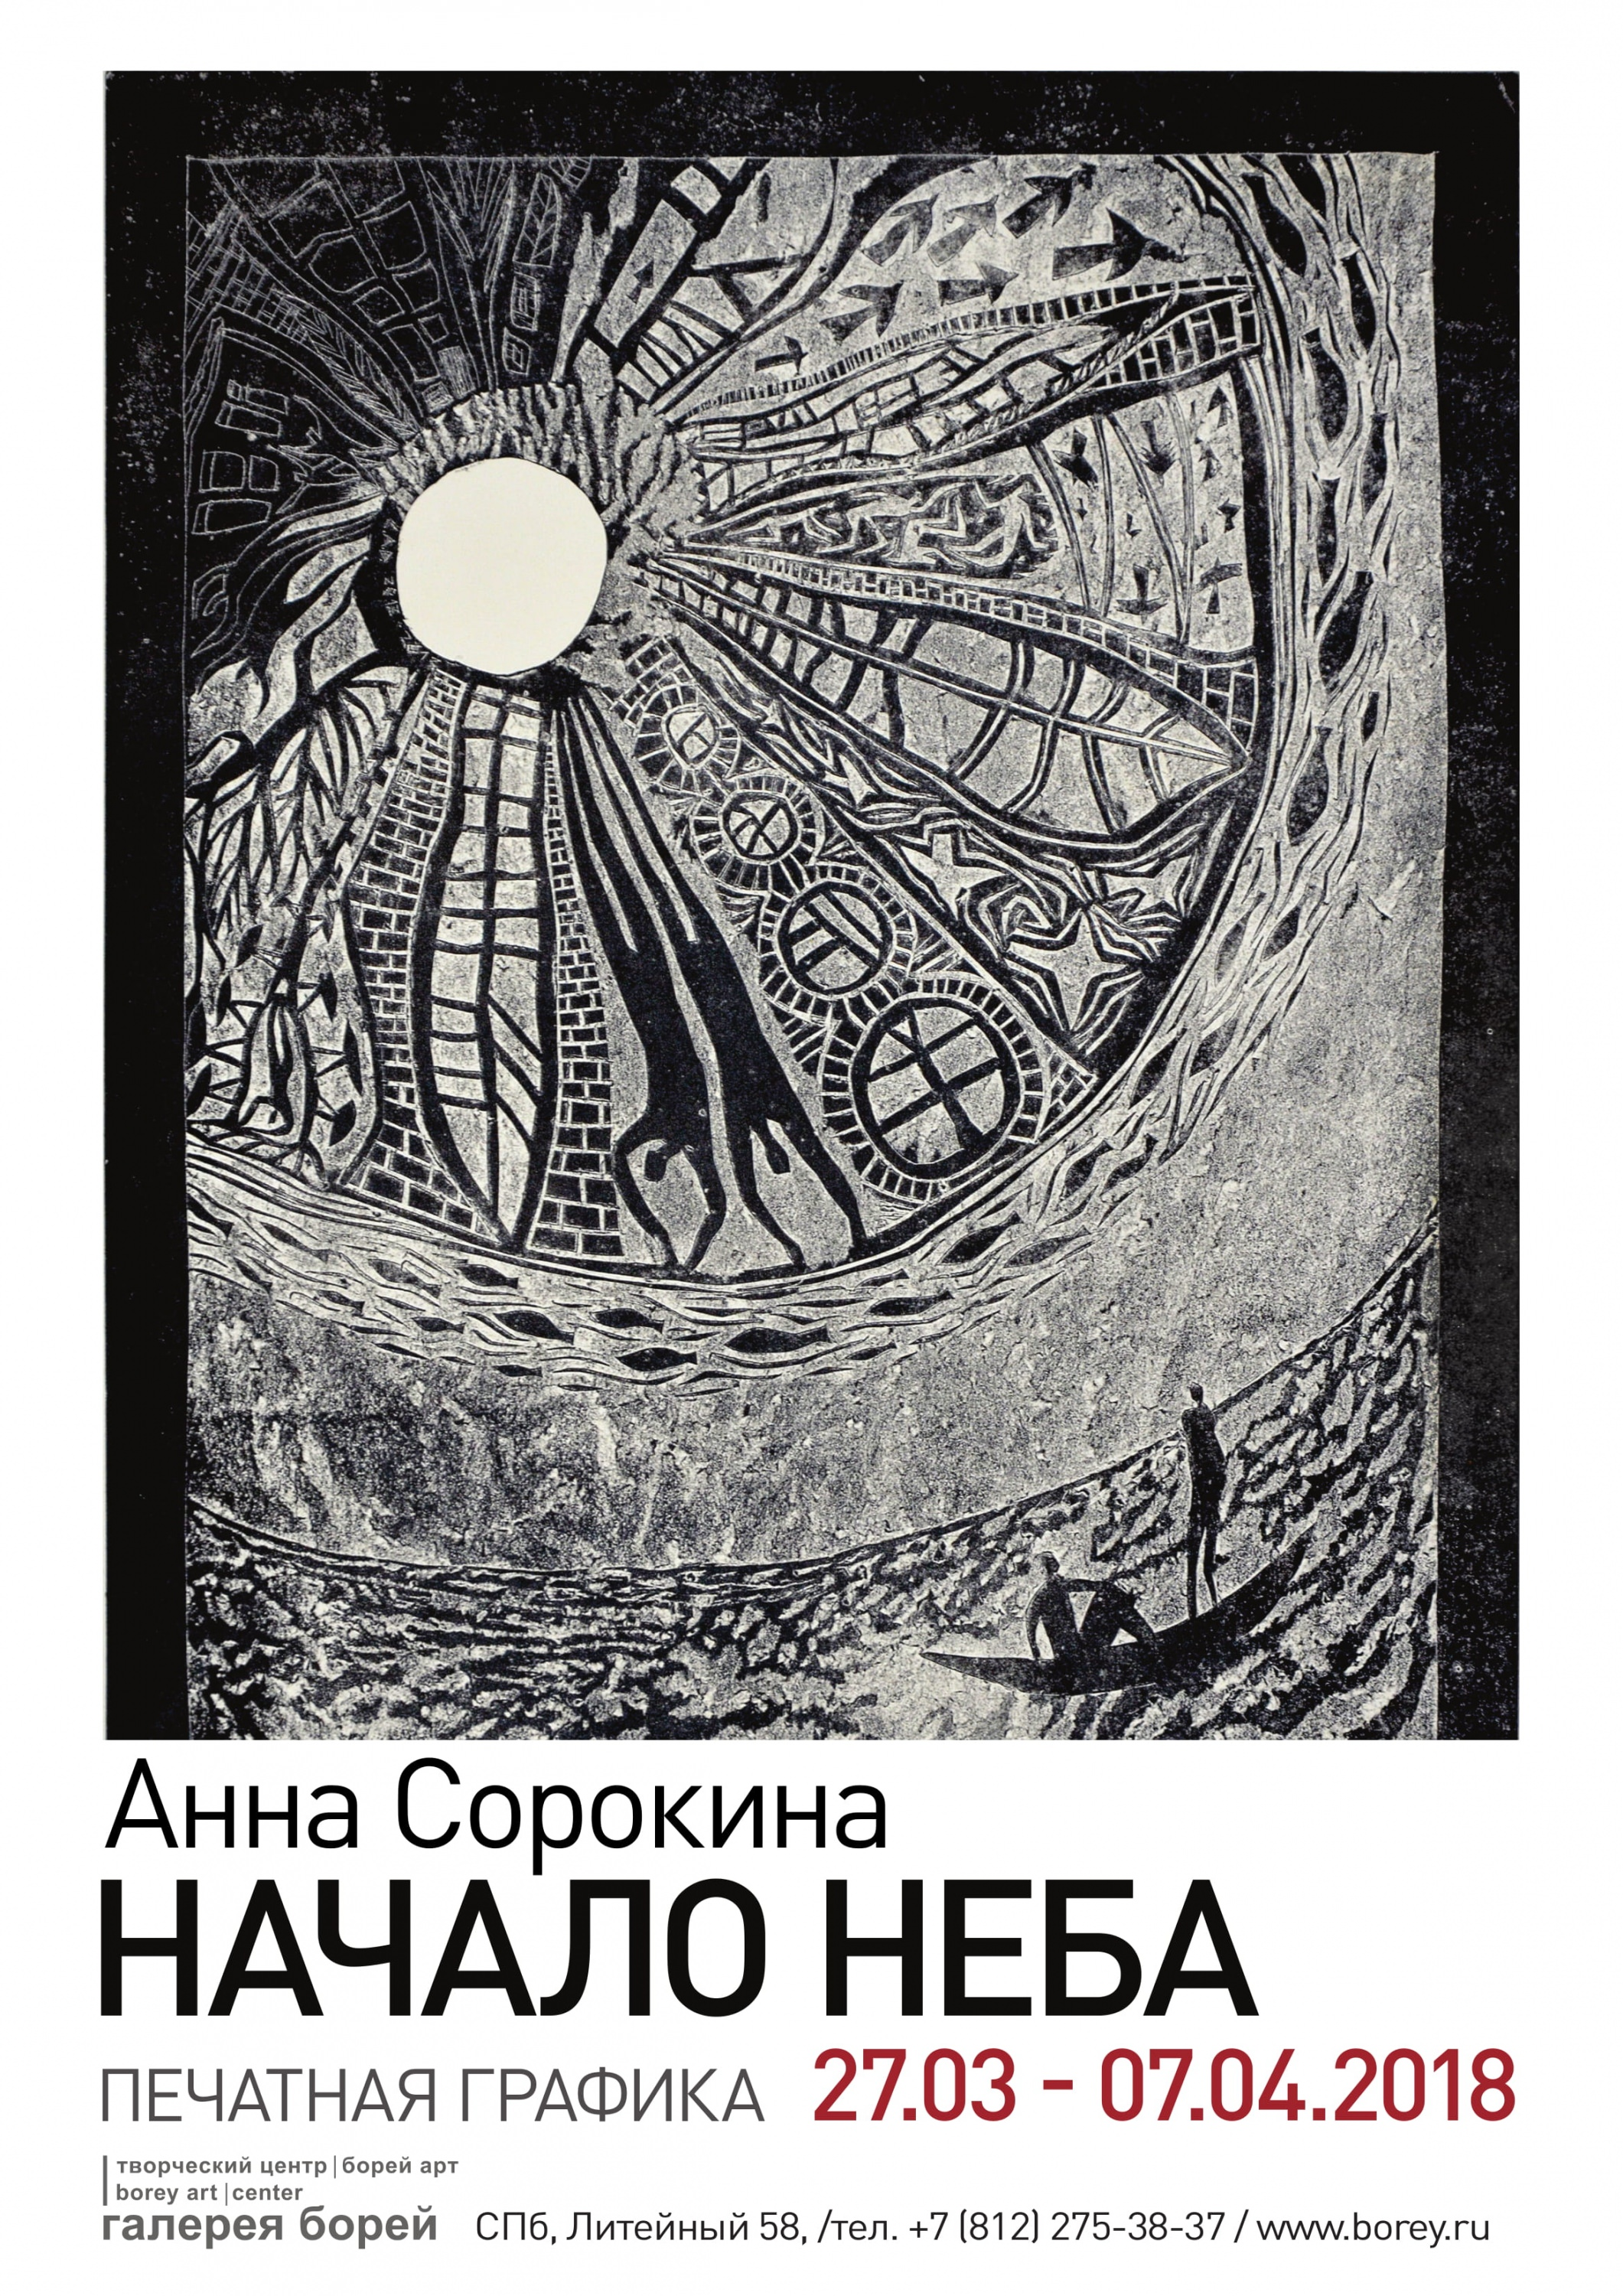 Anna Sorokina. The beginning of the sky. Printed graphics